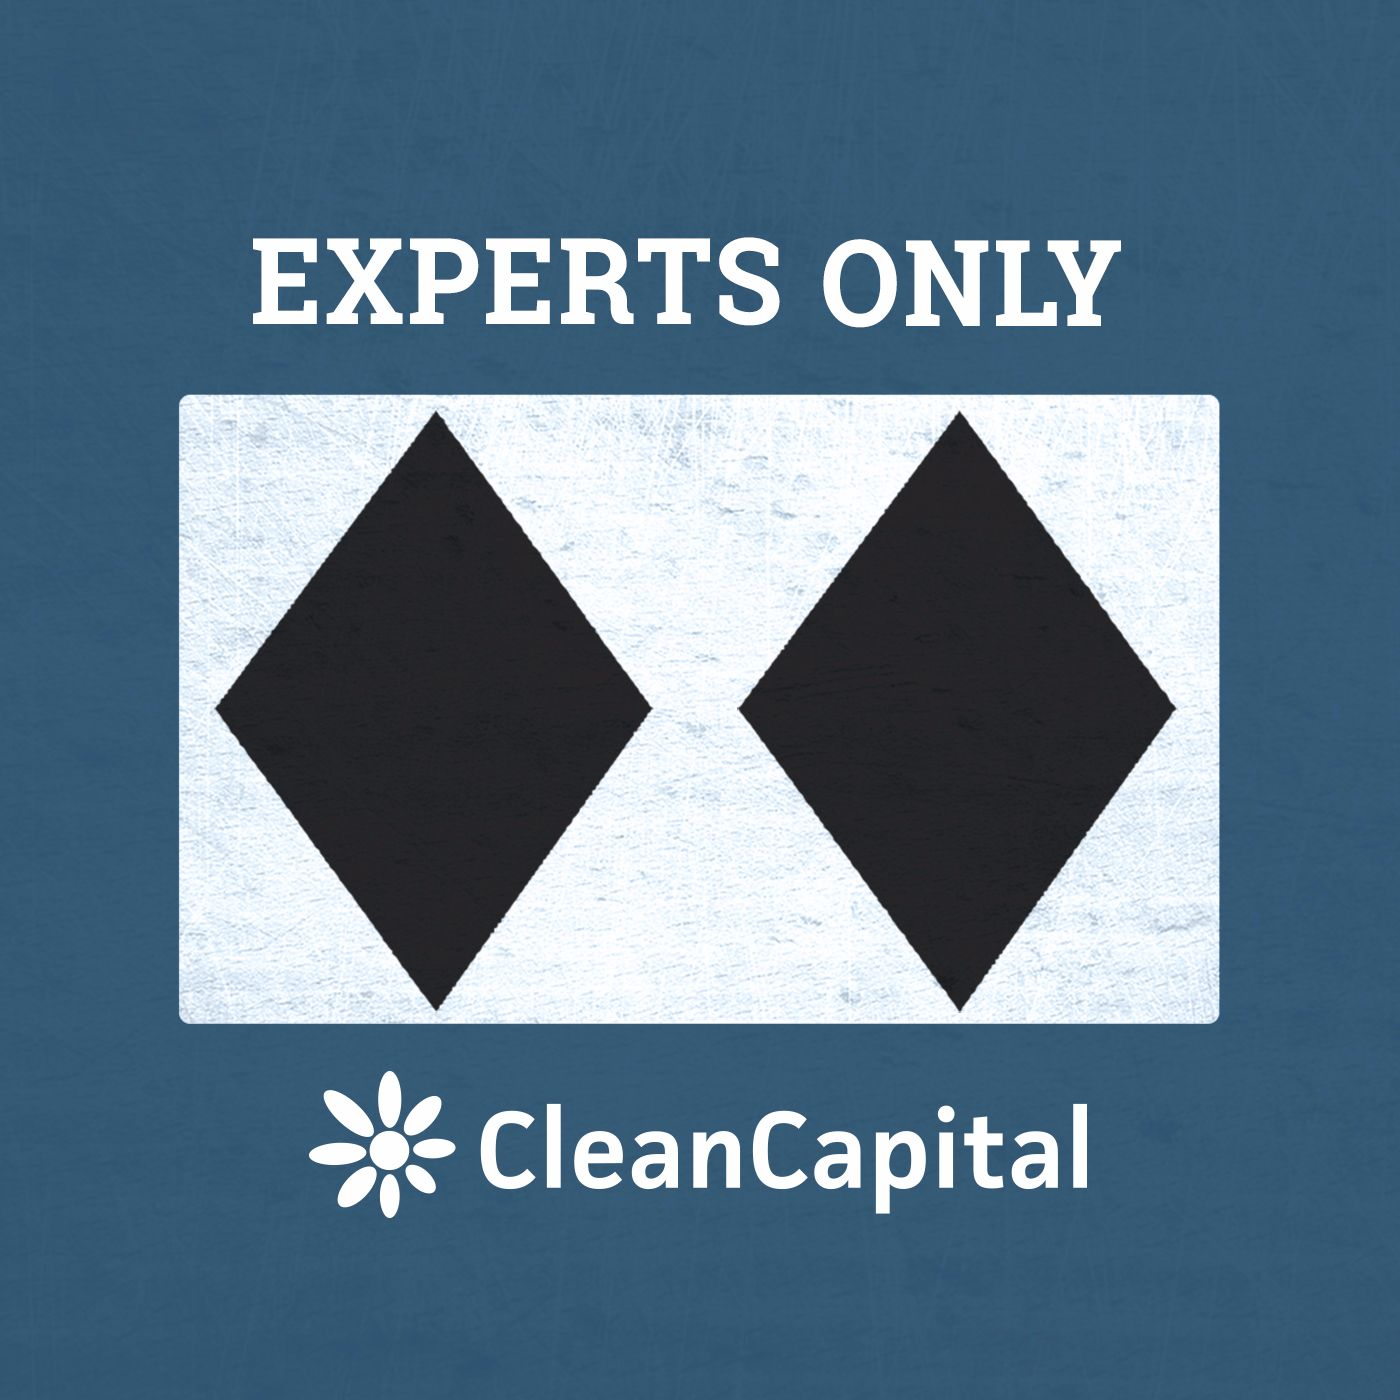 experts only.jpg